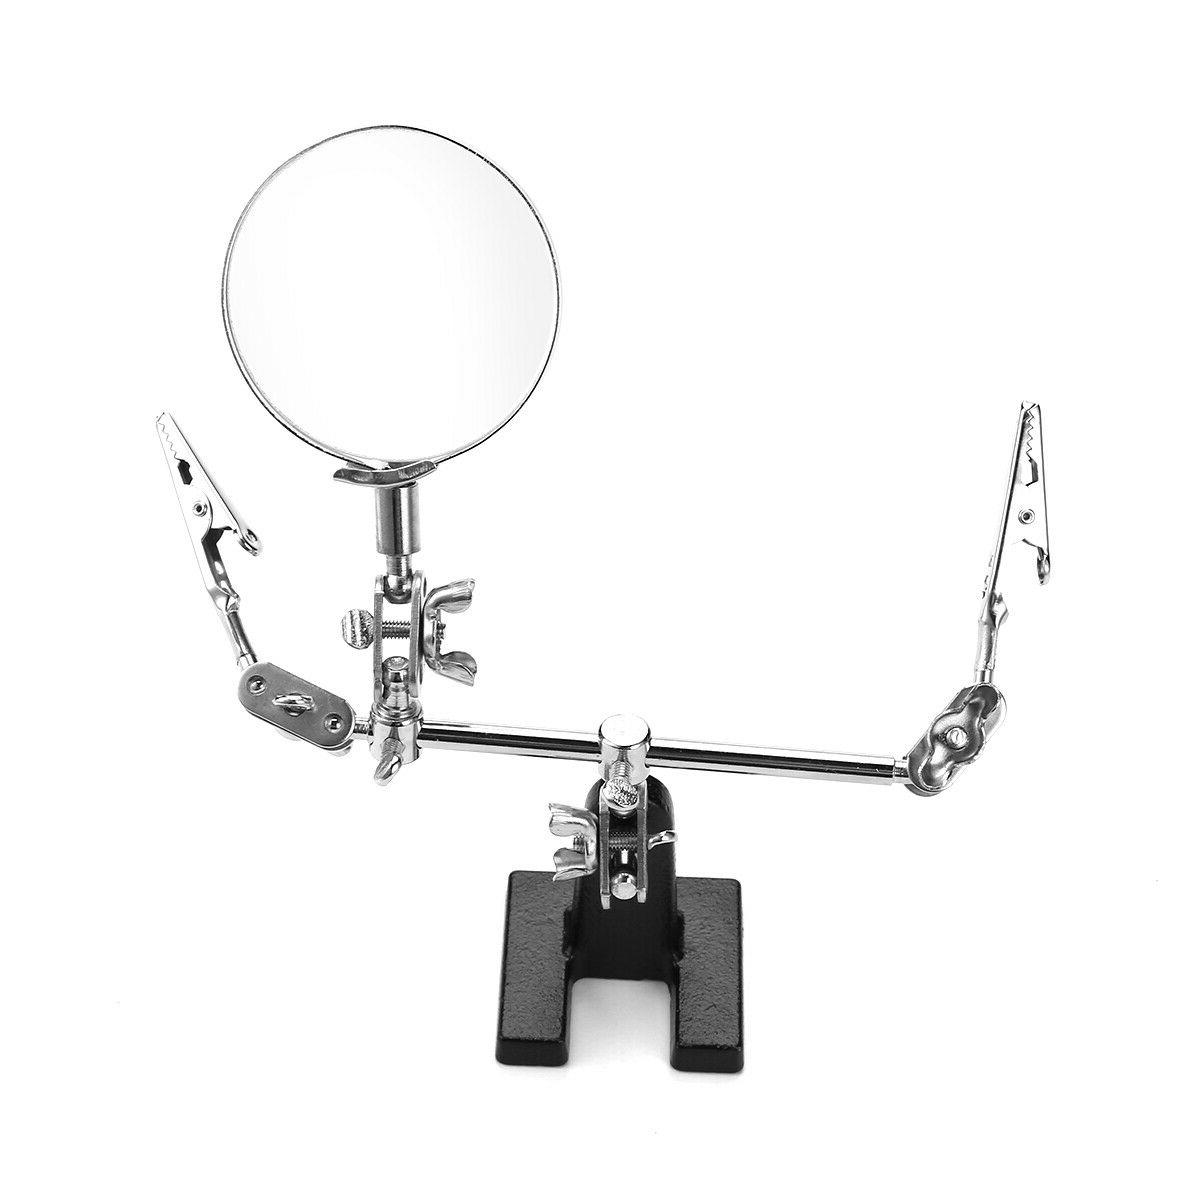 Helping Magnifier 5X Holder